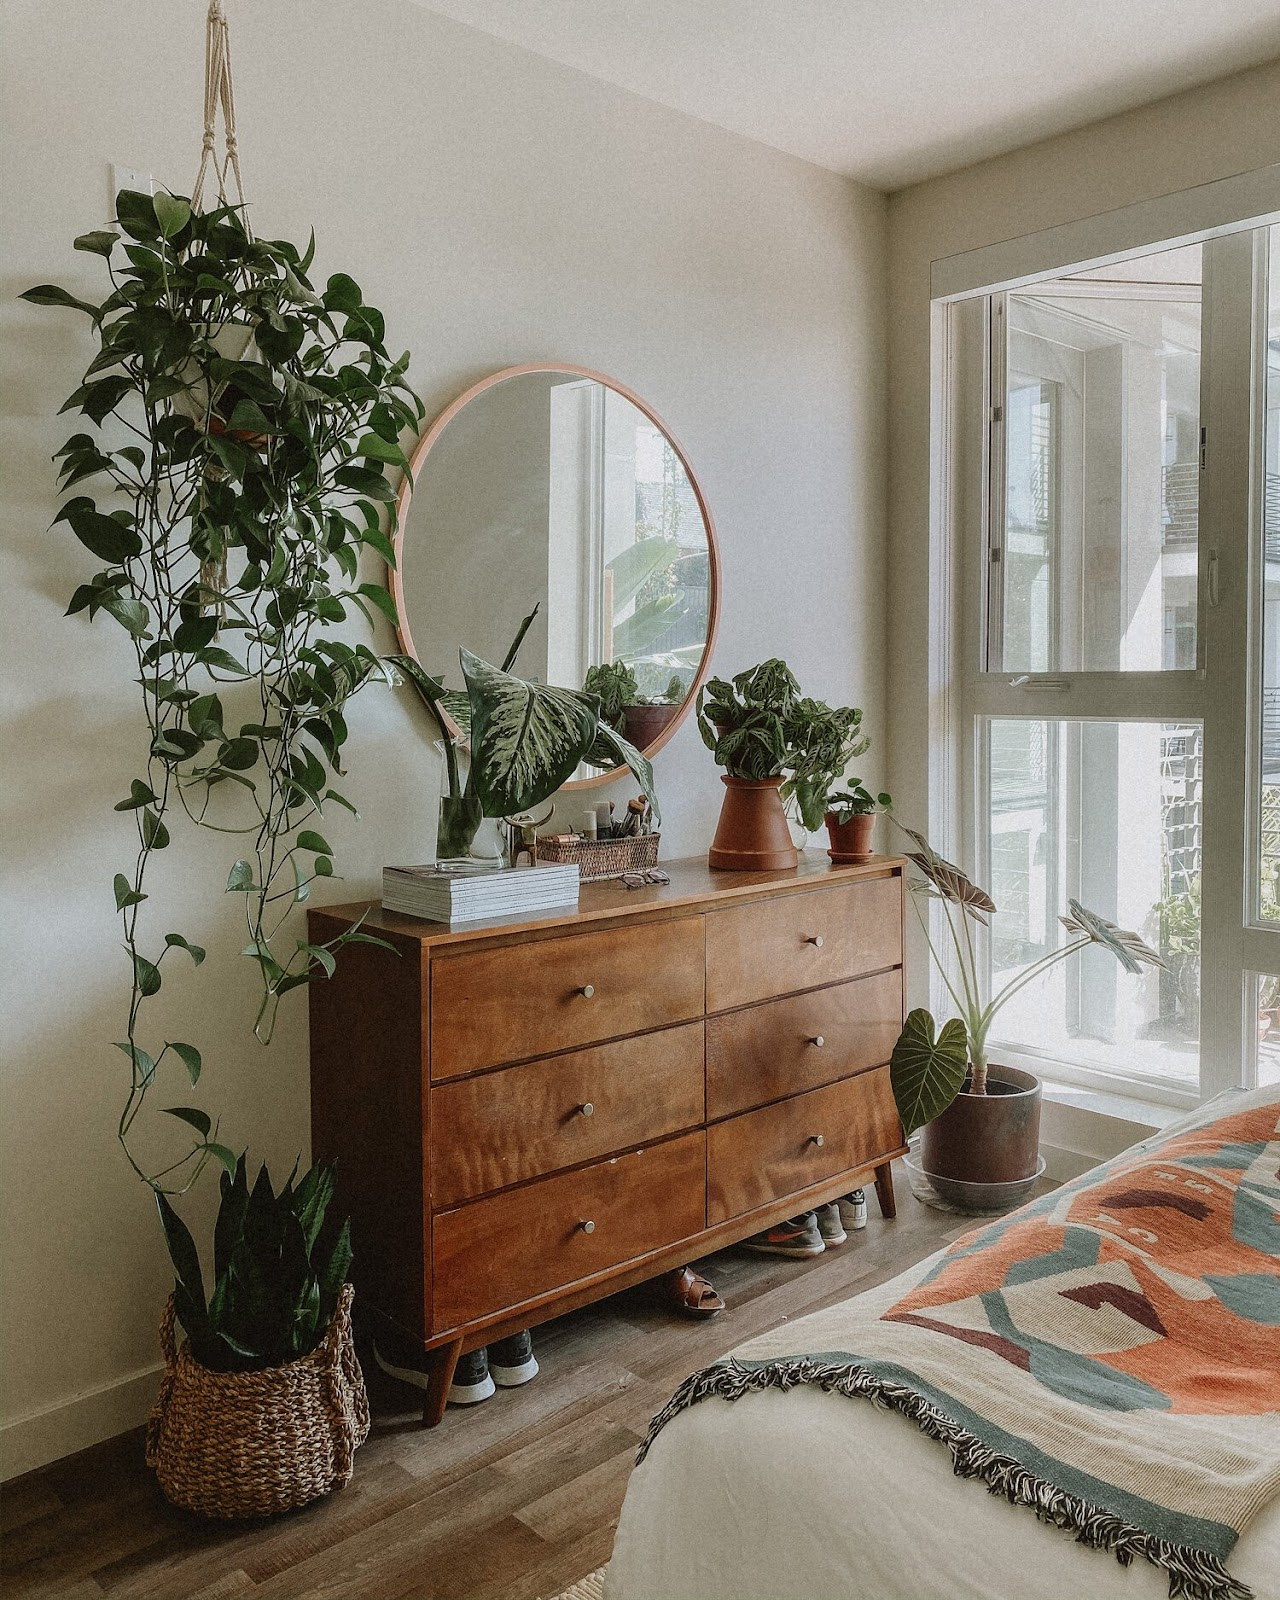 5 Easy Ways of Updating Your Bedroom (Without Breaking the Bank) - Sigrid & Co.